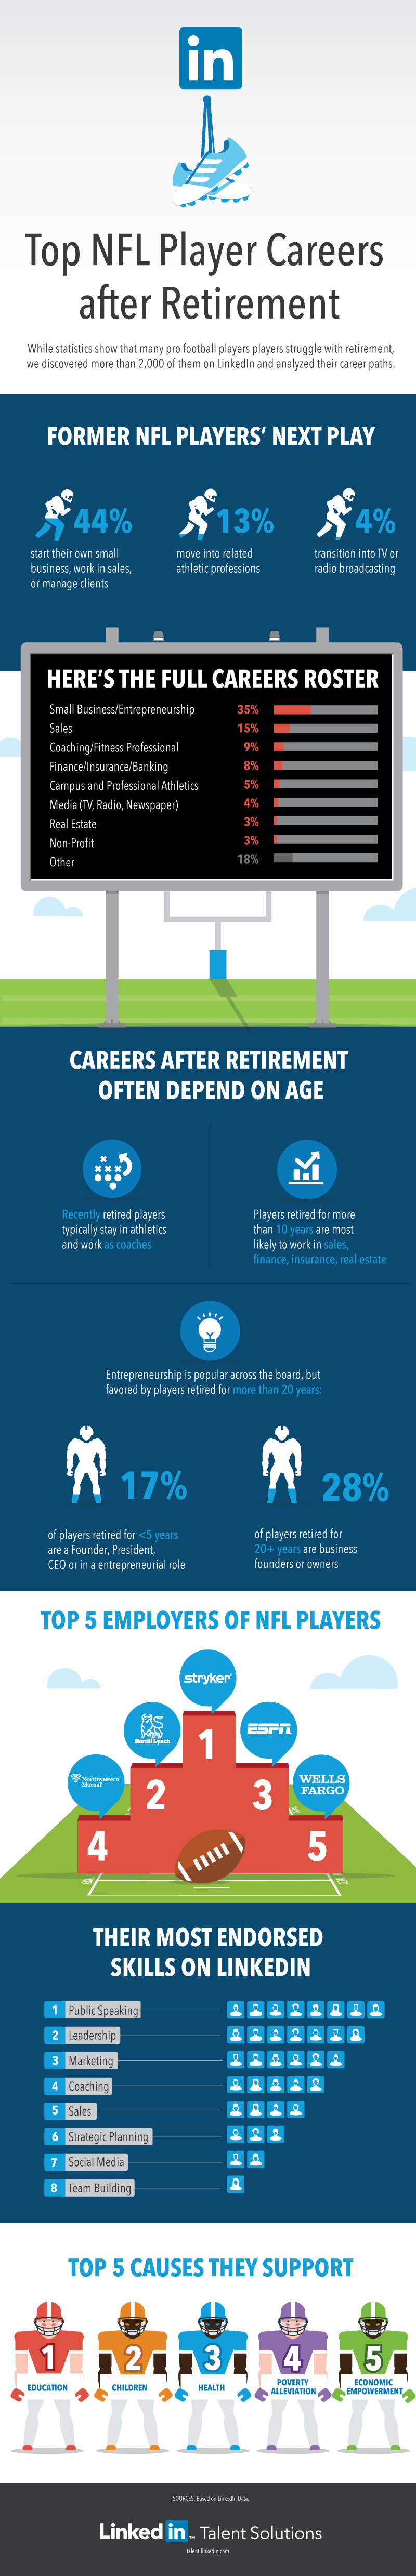 Top-NFL-Player-Careers-after-Retirement_infographic